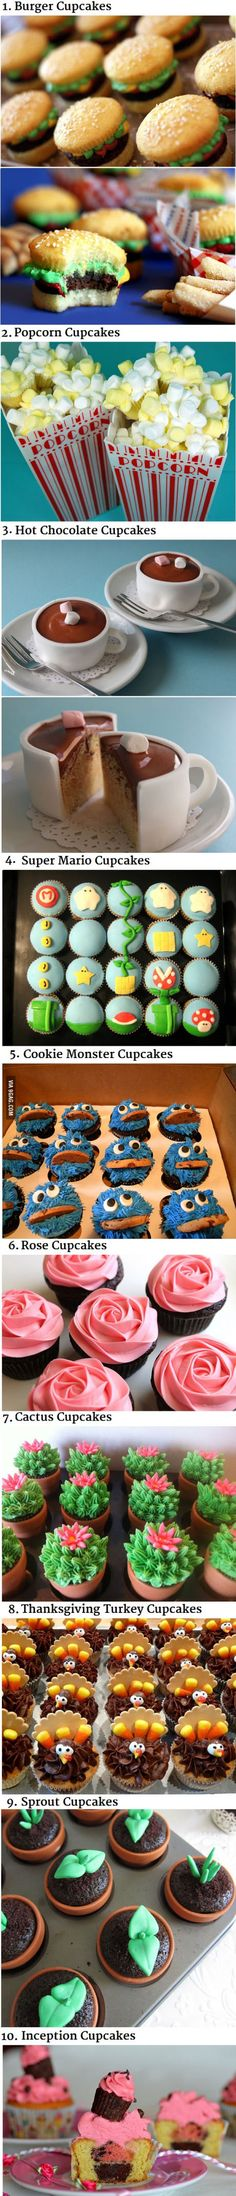 10 Awesome Cupcake Decorating Ideas..